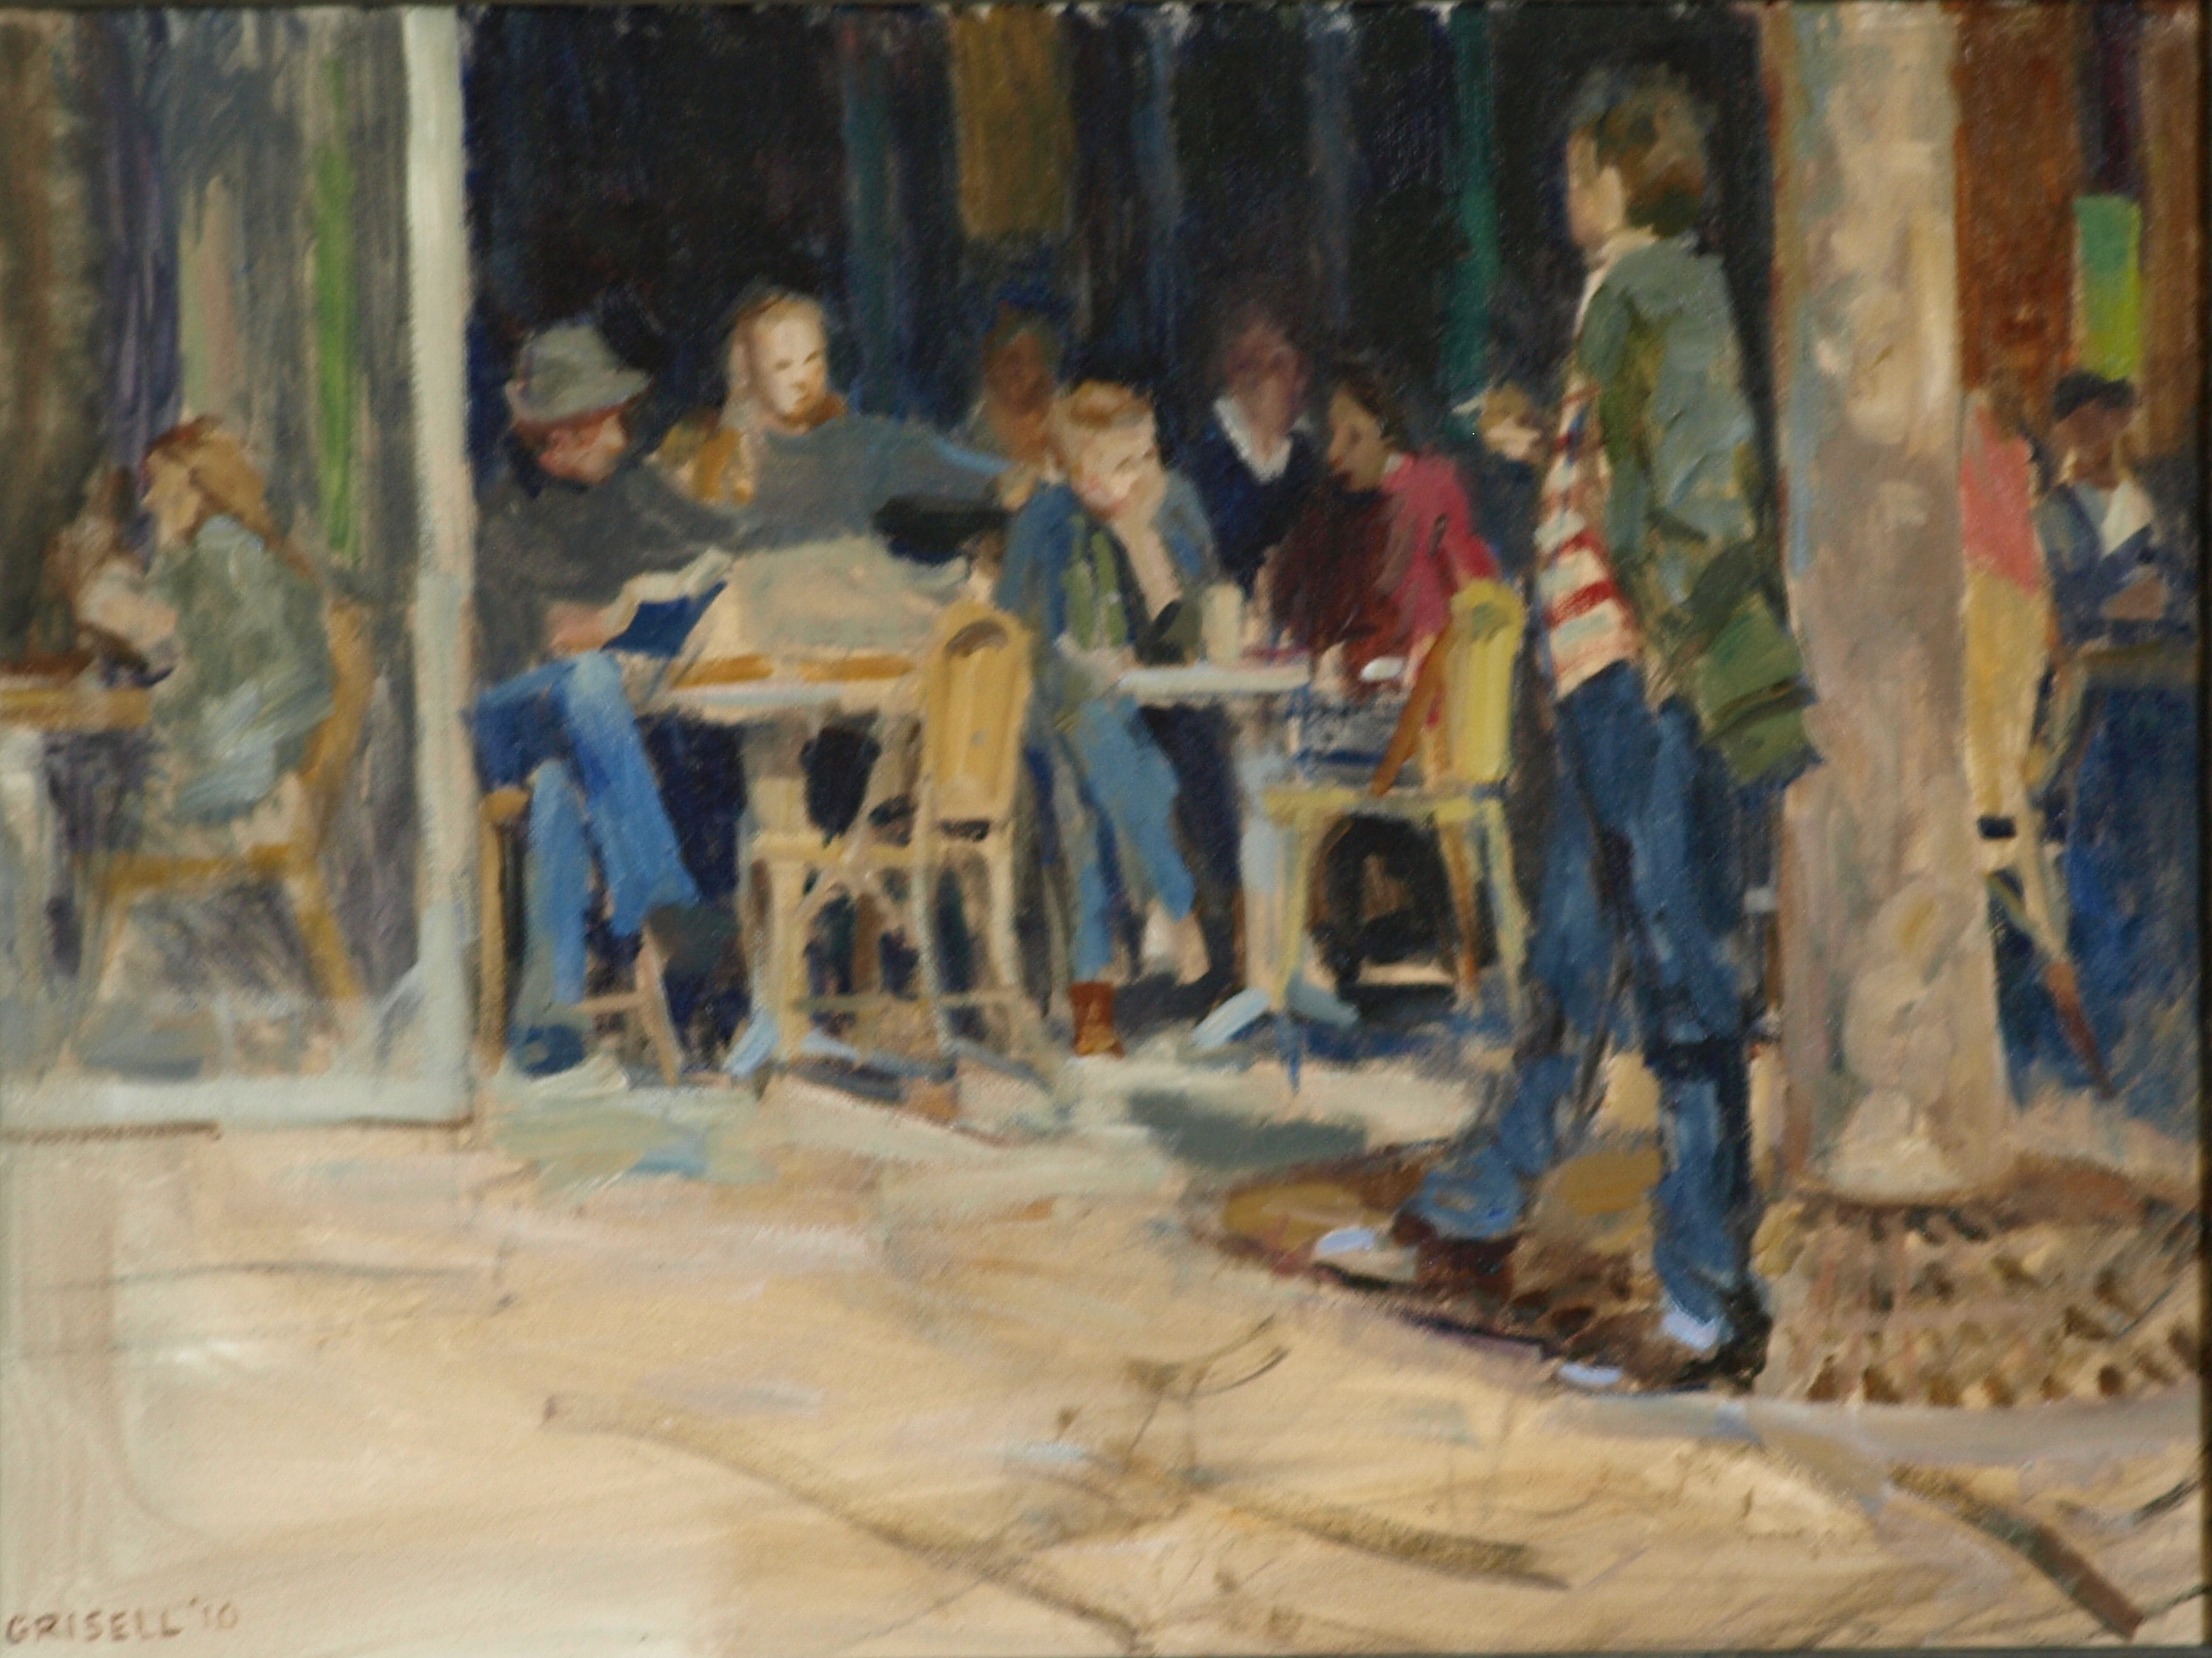 Paris Cafe, Oil on Canvas, 18 x 24 Inches, by Susan Grisell, $650